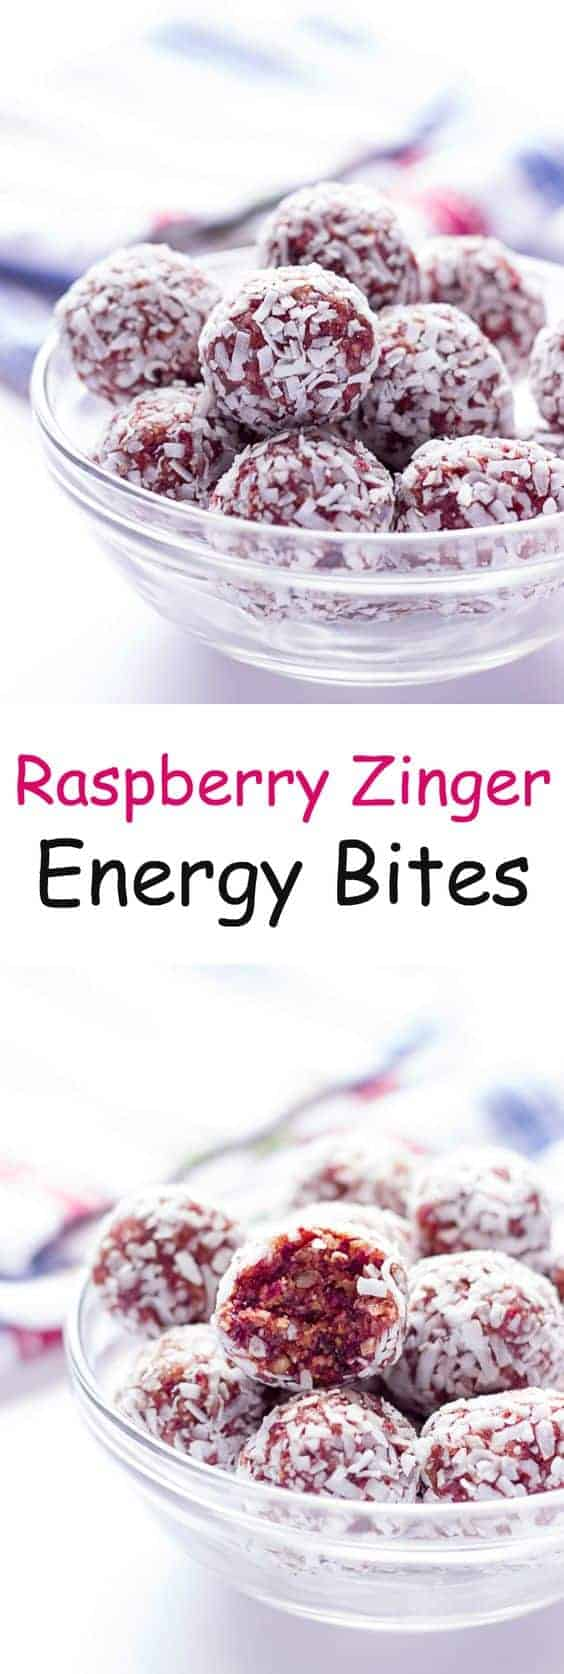 Raspberry Zinger Energy Balls by Wholesome Dish | Energy ball recipes that everyone will enjoy!